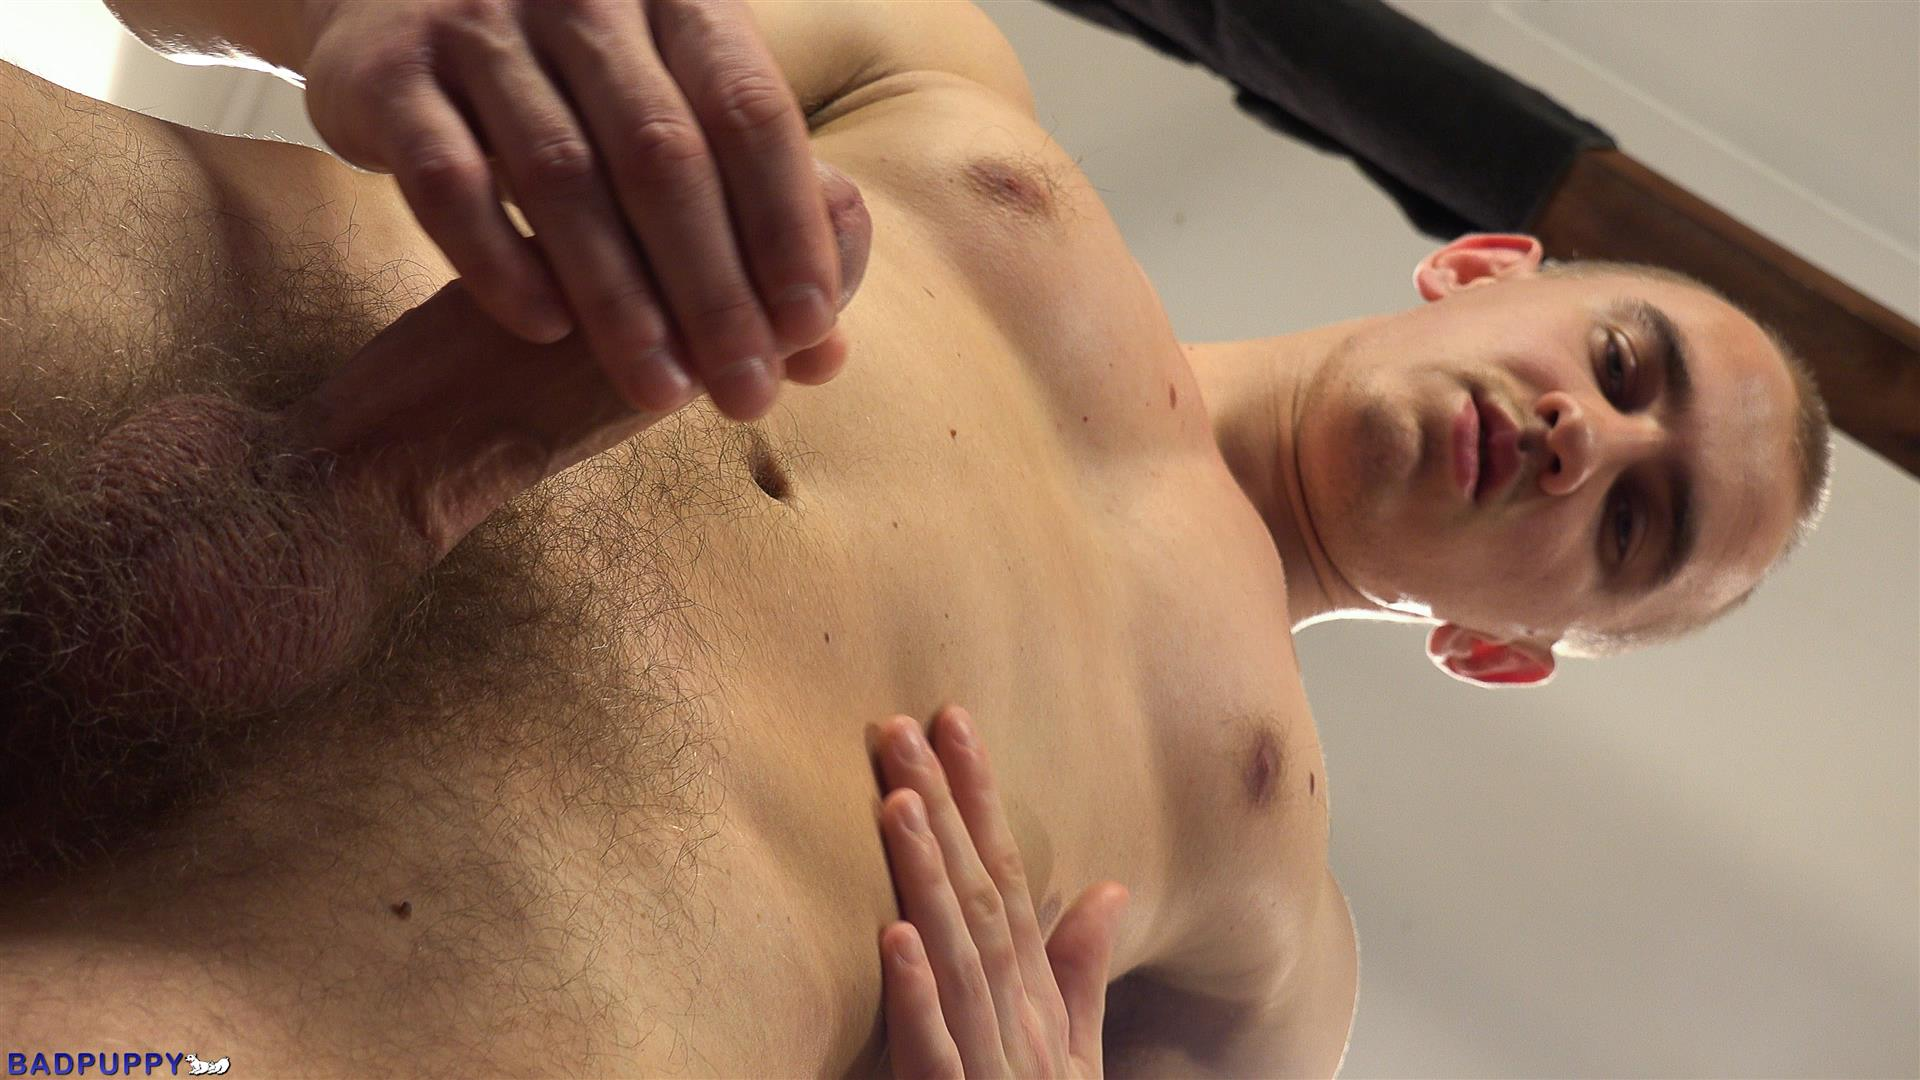 Oleg Moloda Badpuppy Straight Czech Jock With Big Uncut Cock Amateur Gay Porn 09 Straight Czech Muscle Jock Auditions For Gay Porn